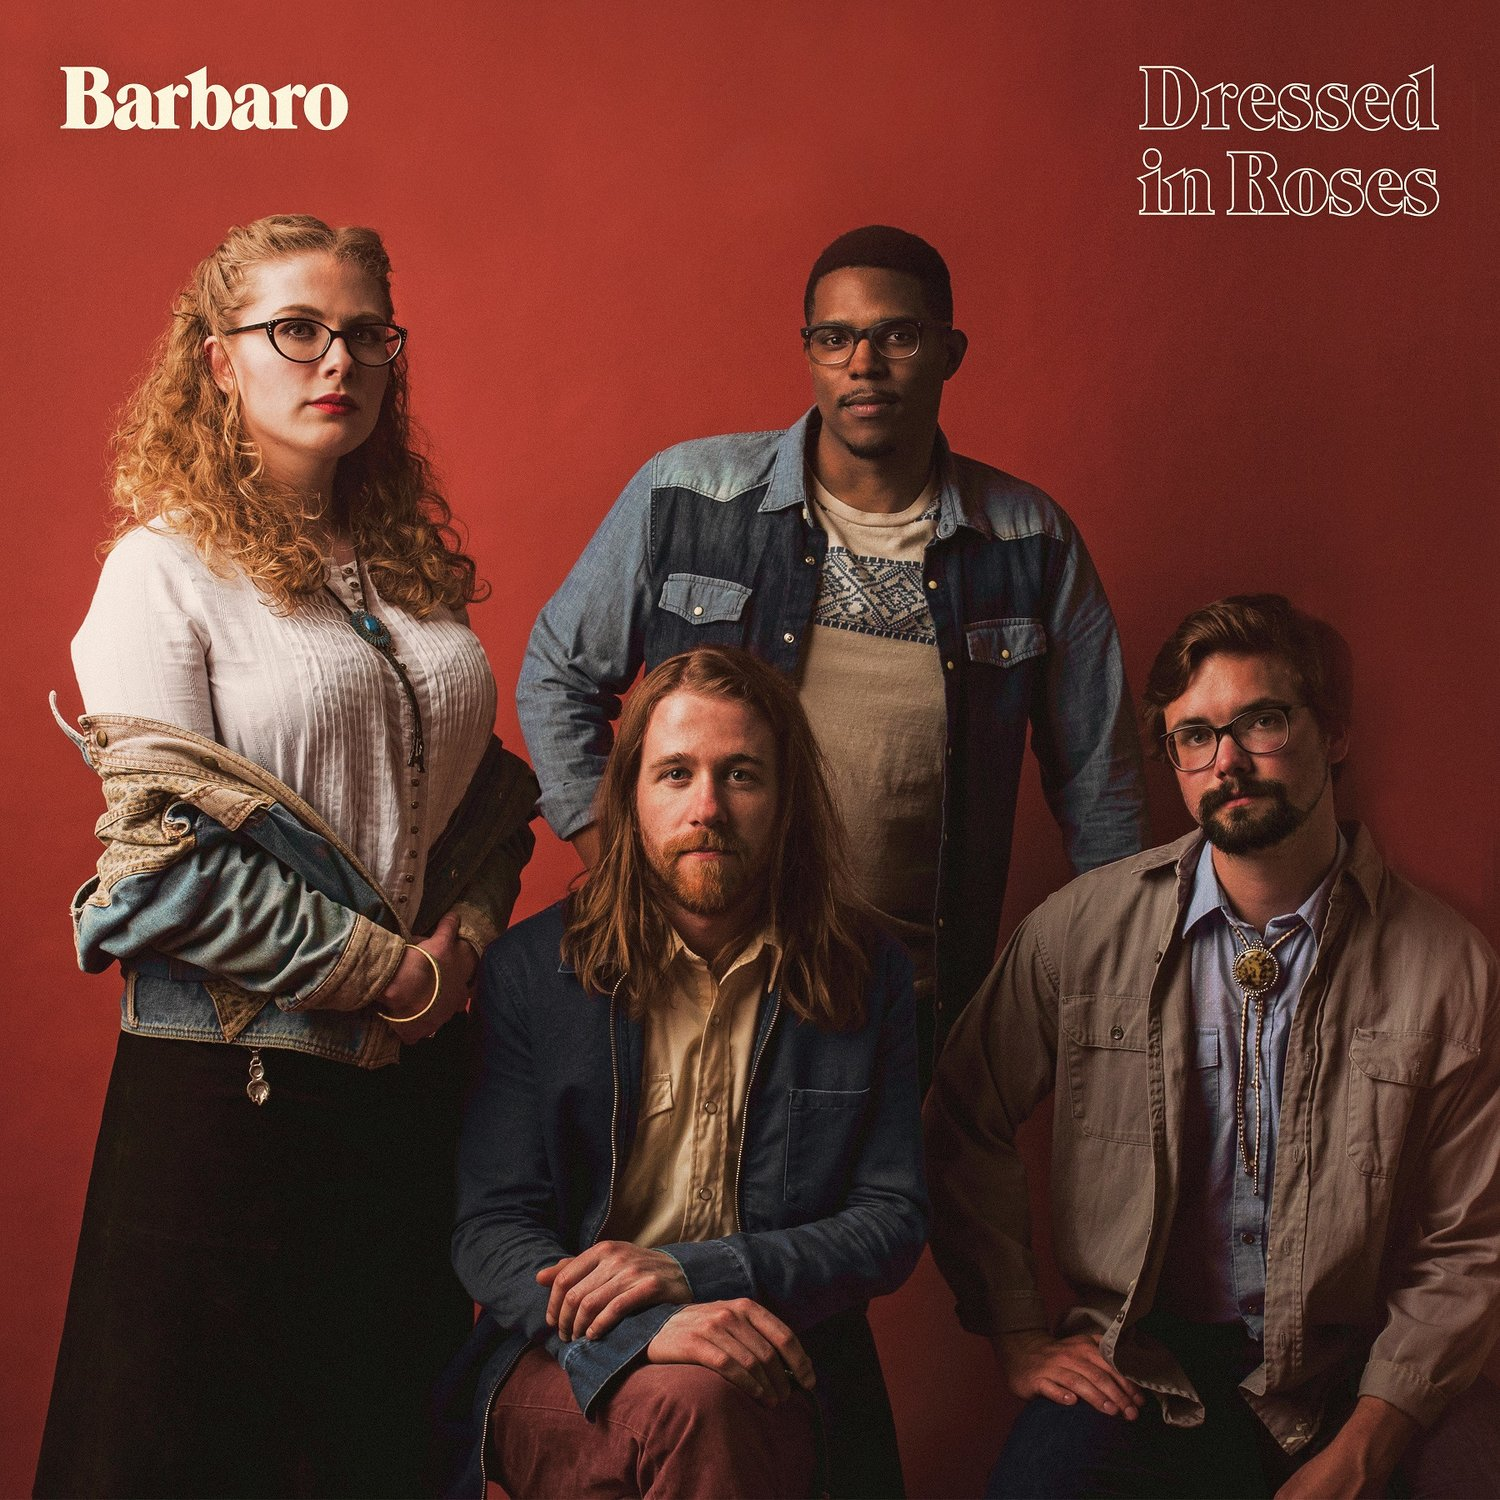 Barbaro: Dressed In Roses